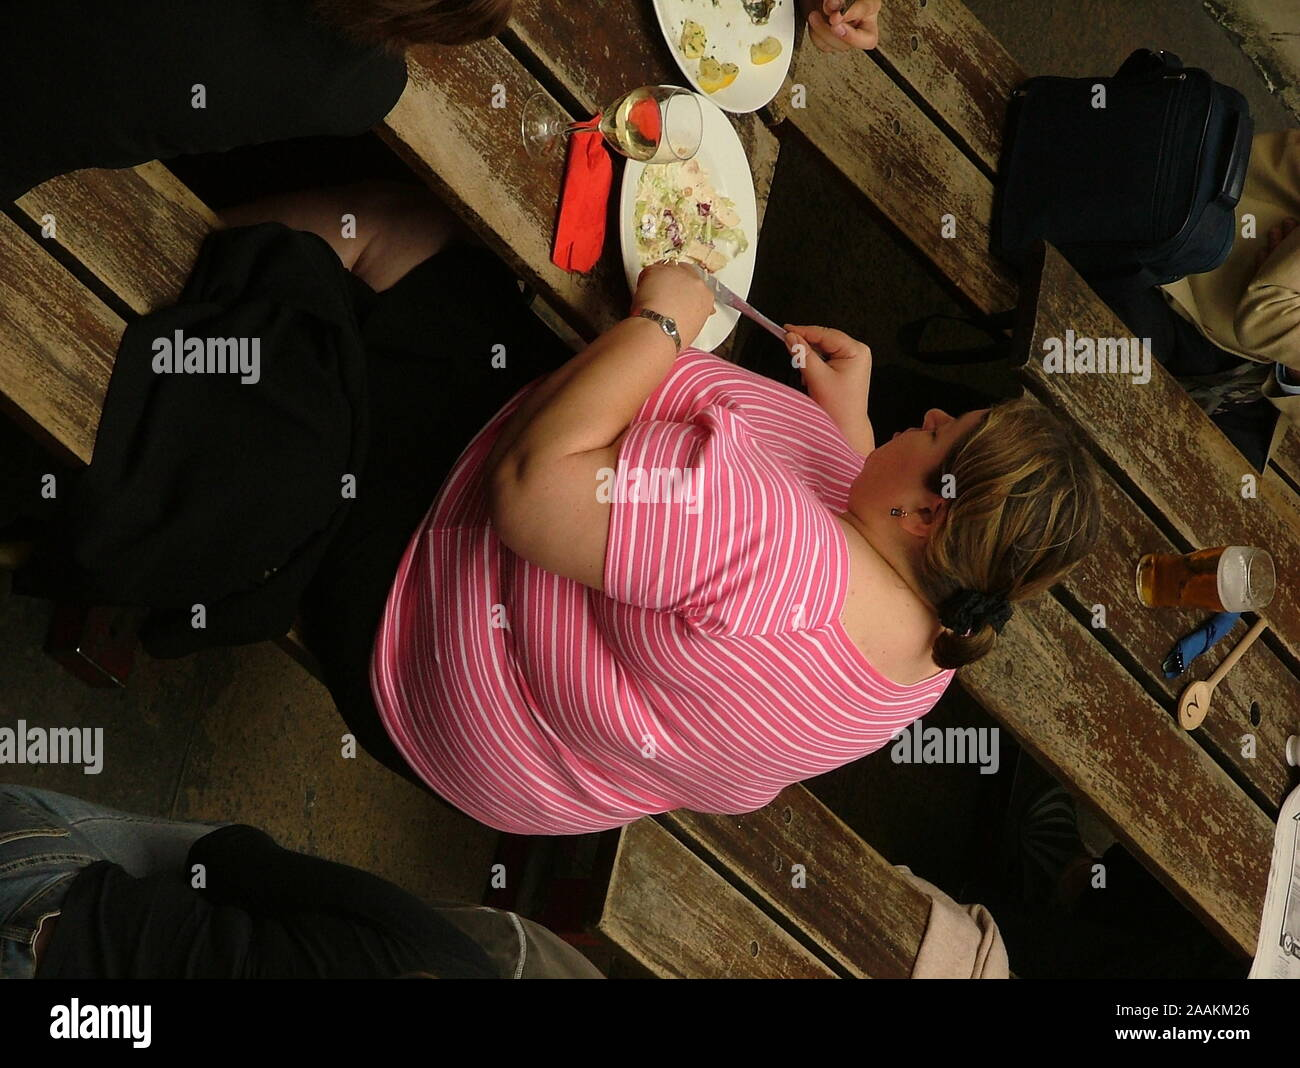 Obesity, medical condition, public health issue Stock Photo